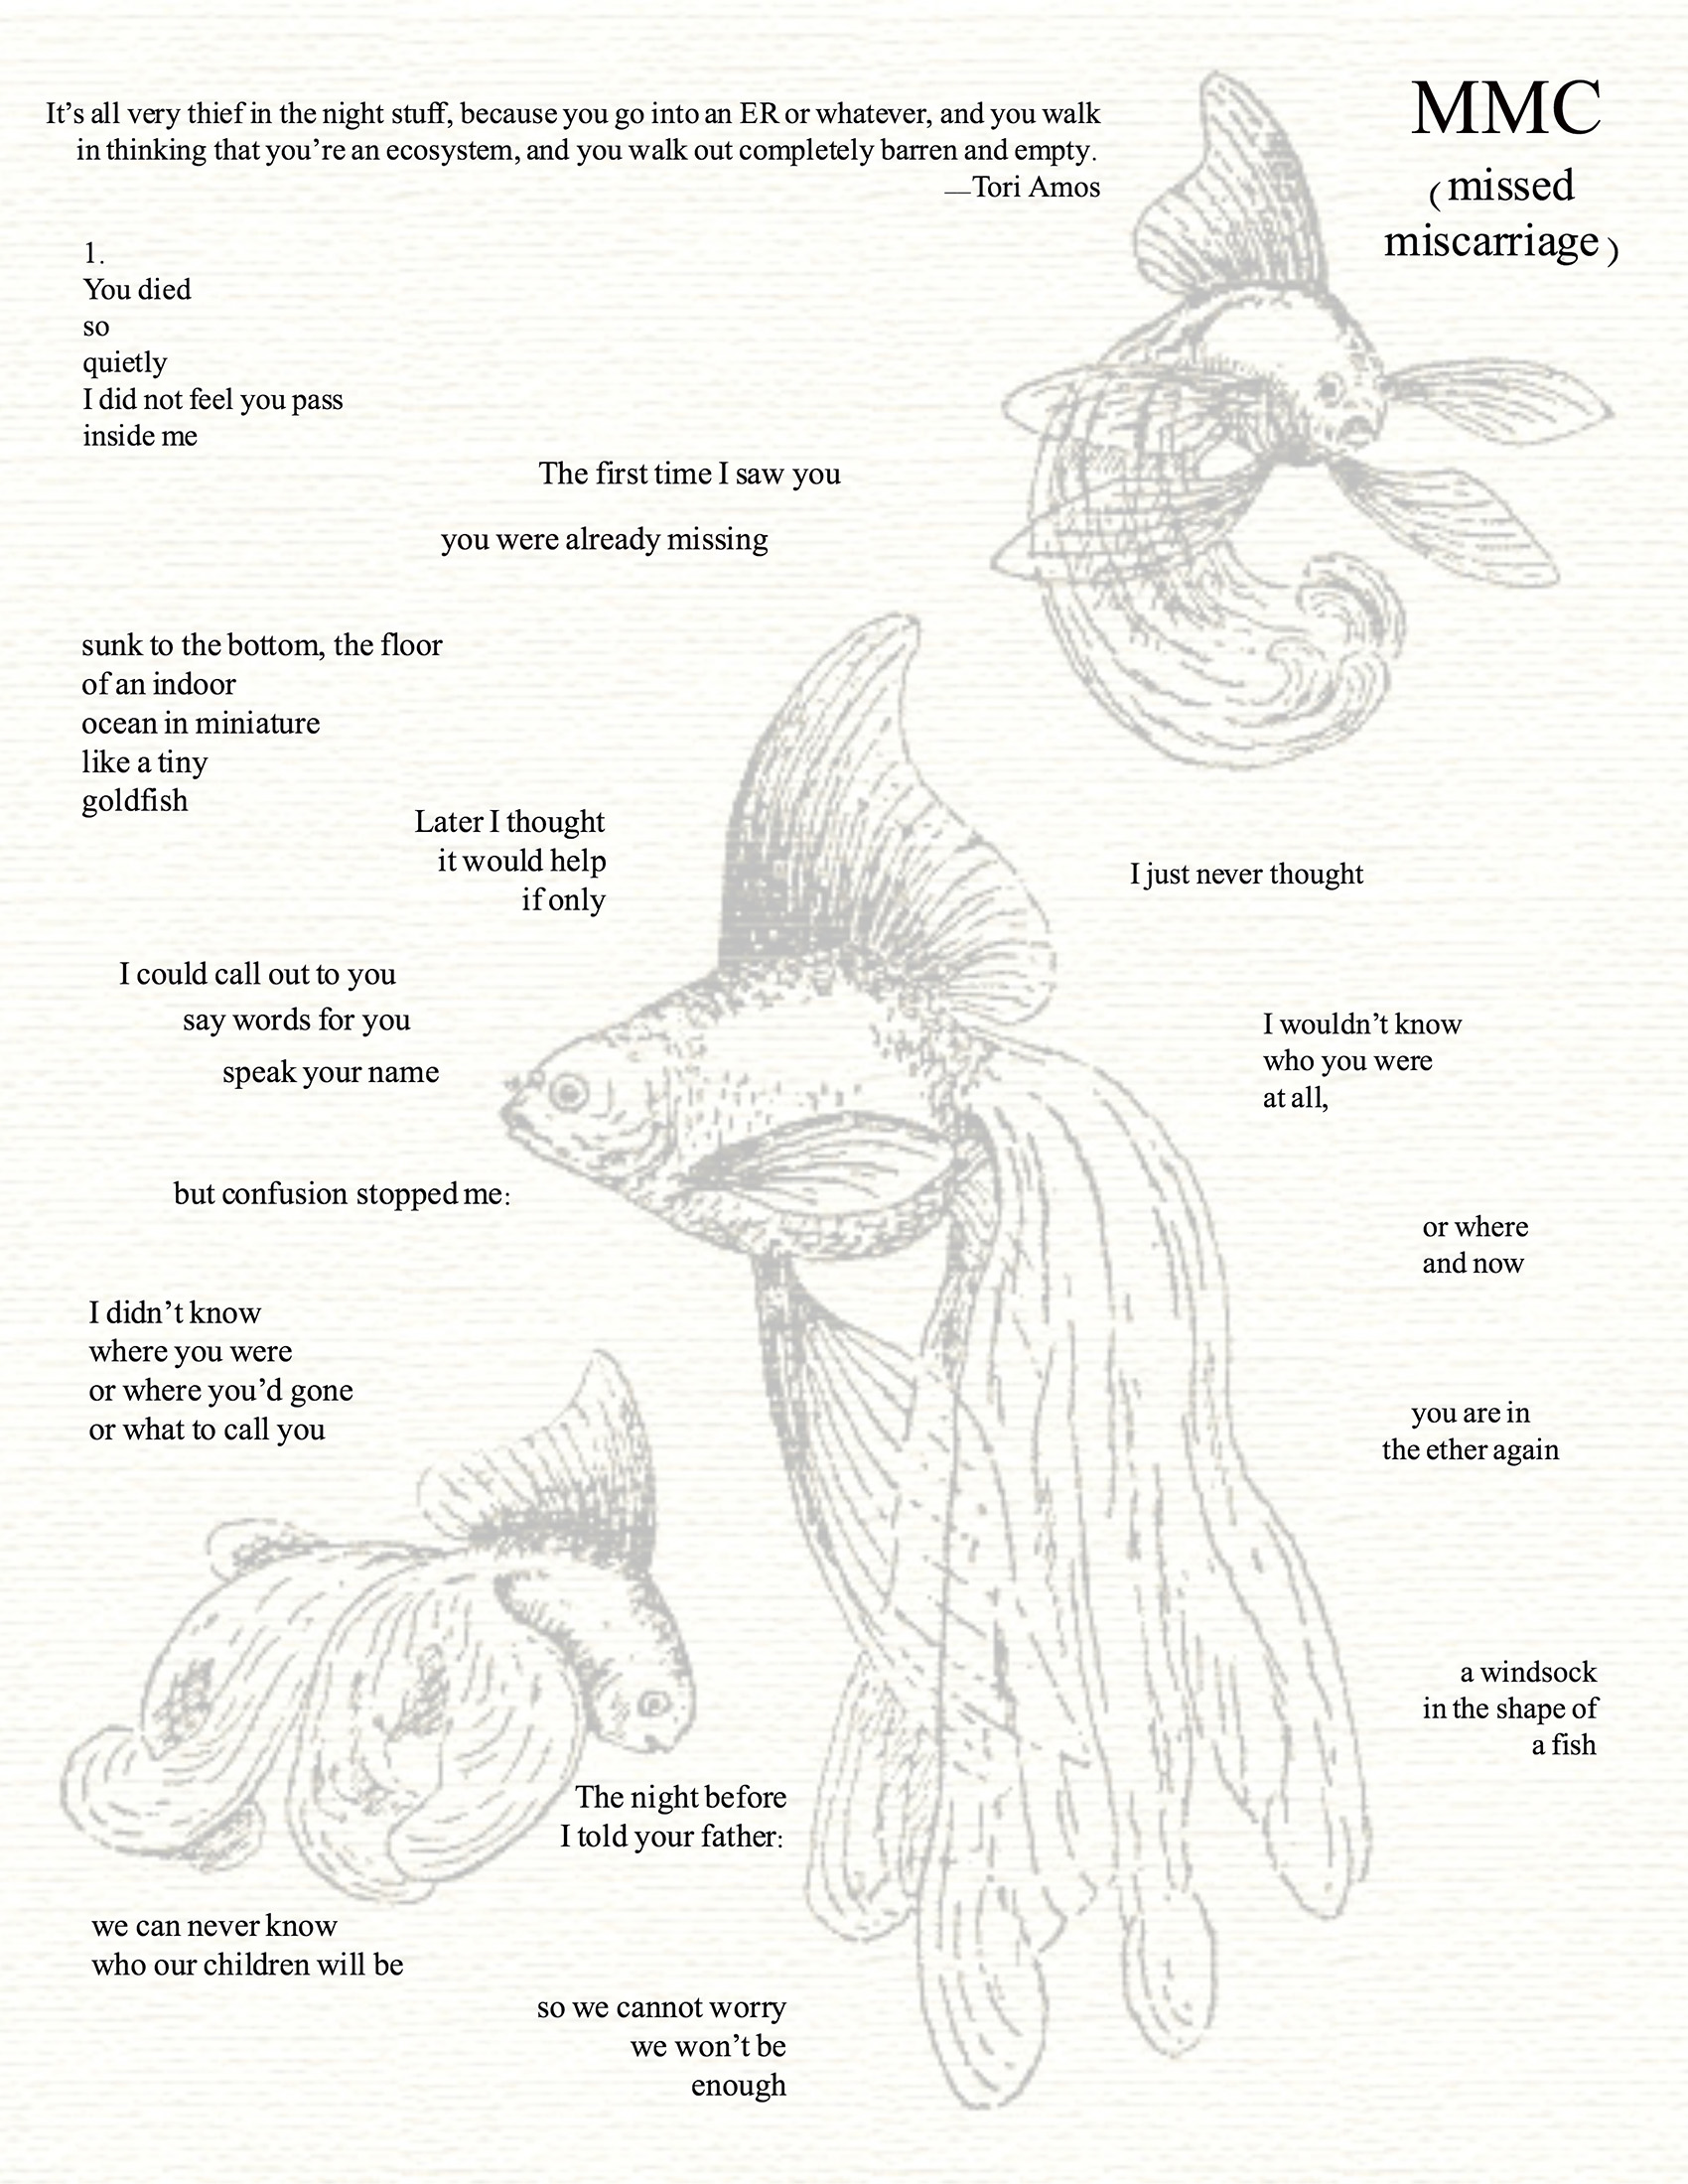 poem referencing miscarriage superimposed over illustrations of goldfish